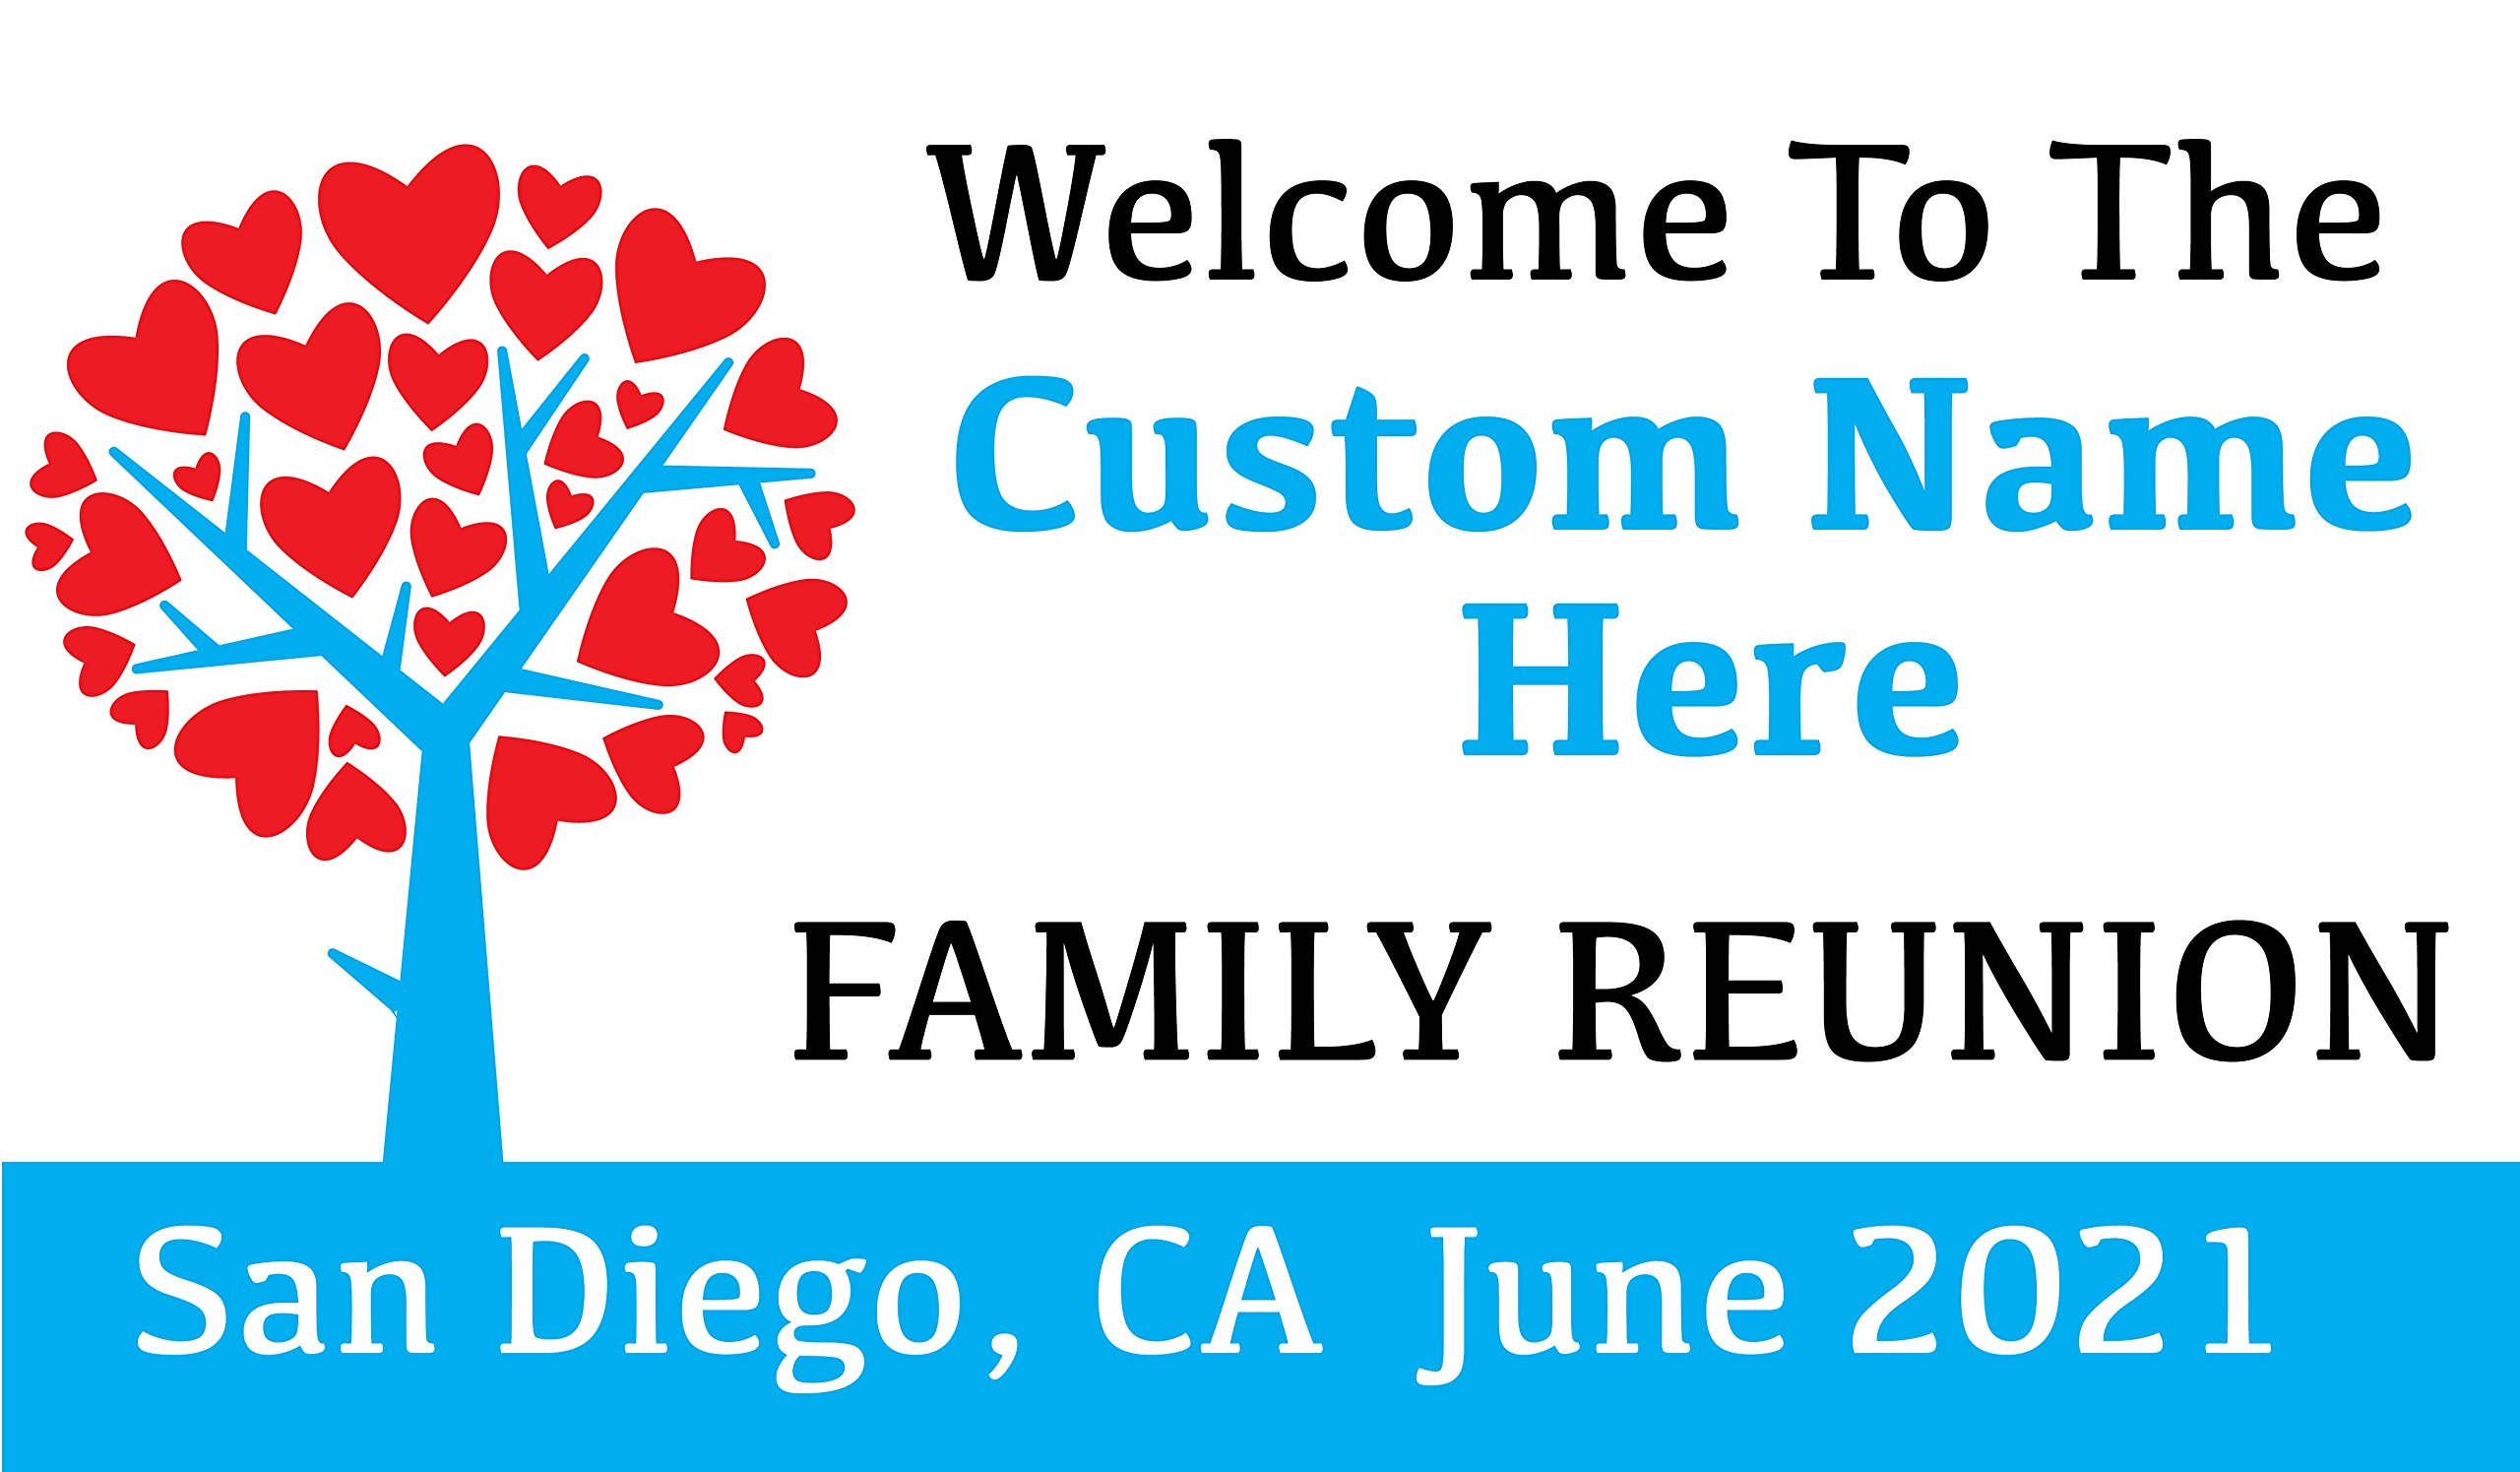 Family Reunion Custom Printed Banner - Tree Hearts Blue (10' x 5') by Reliable Banner Sign Supply & Printing